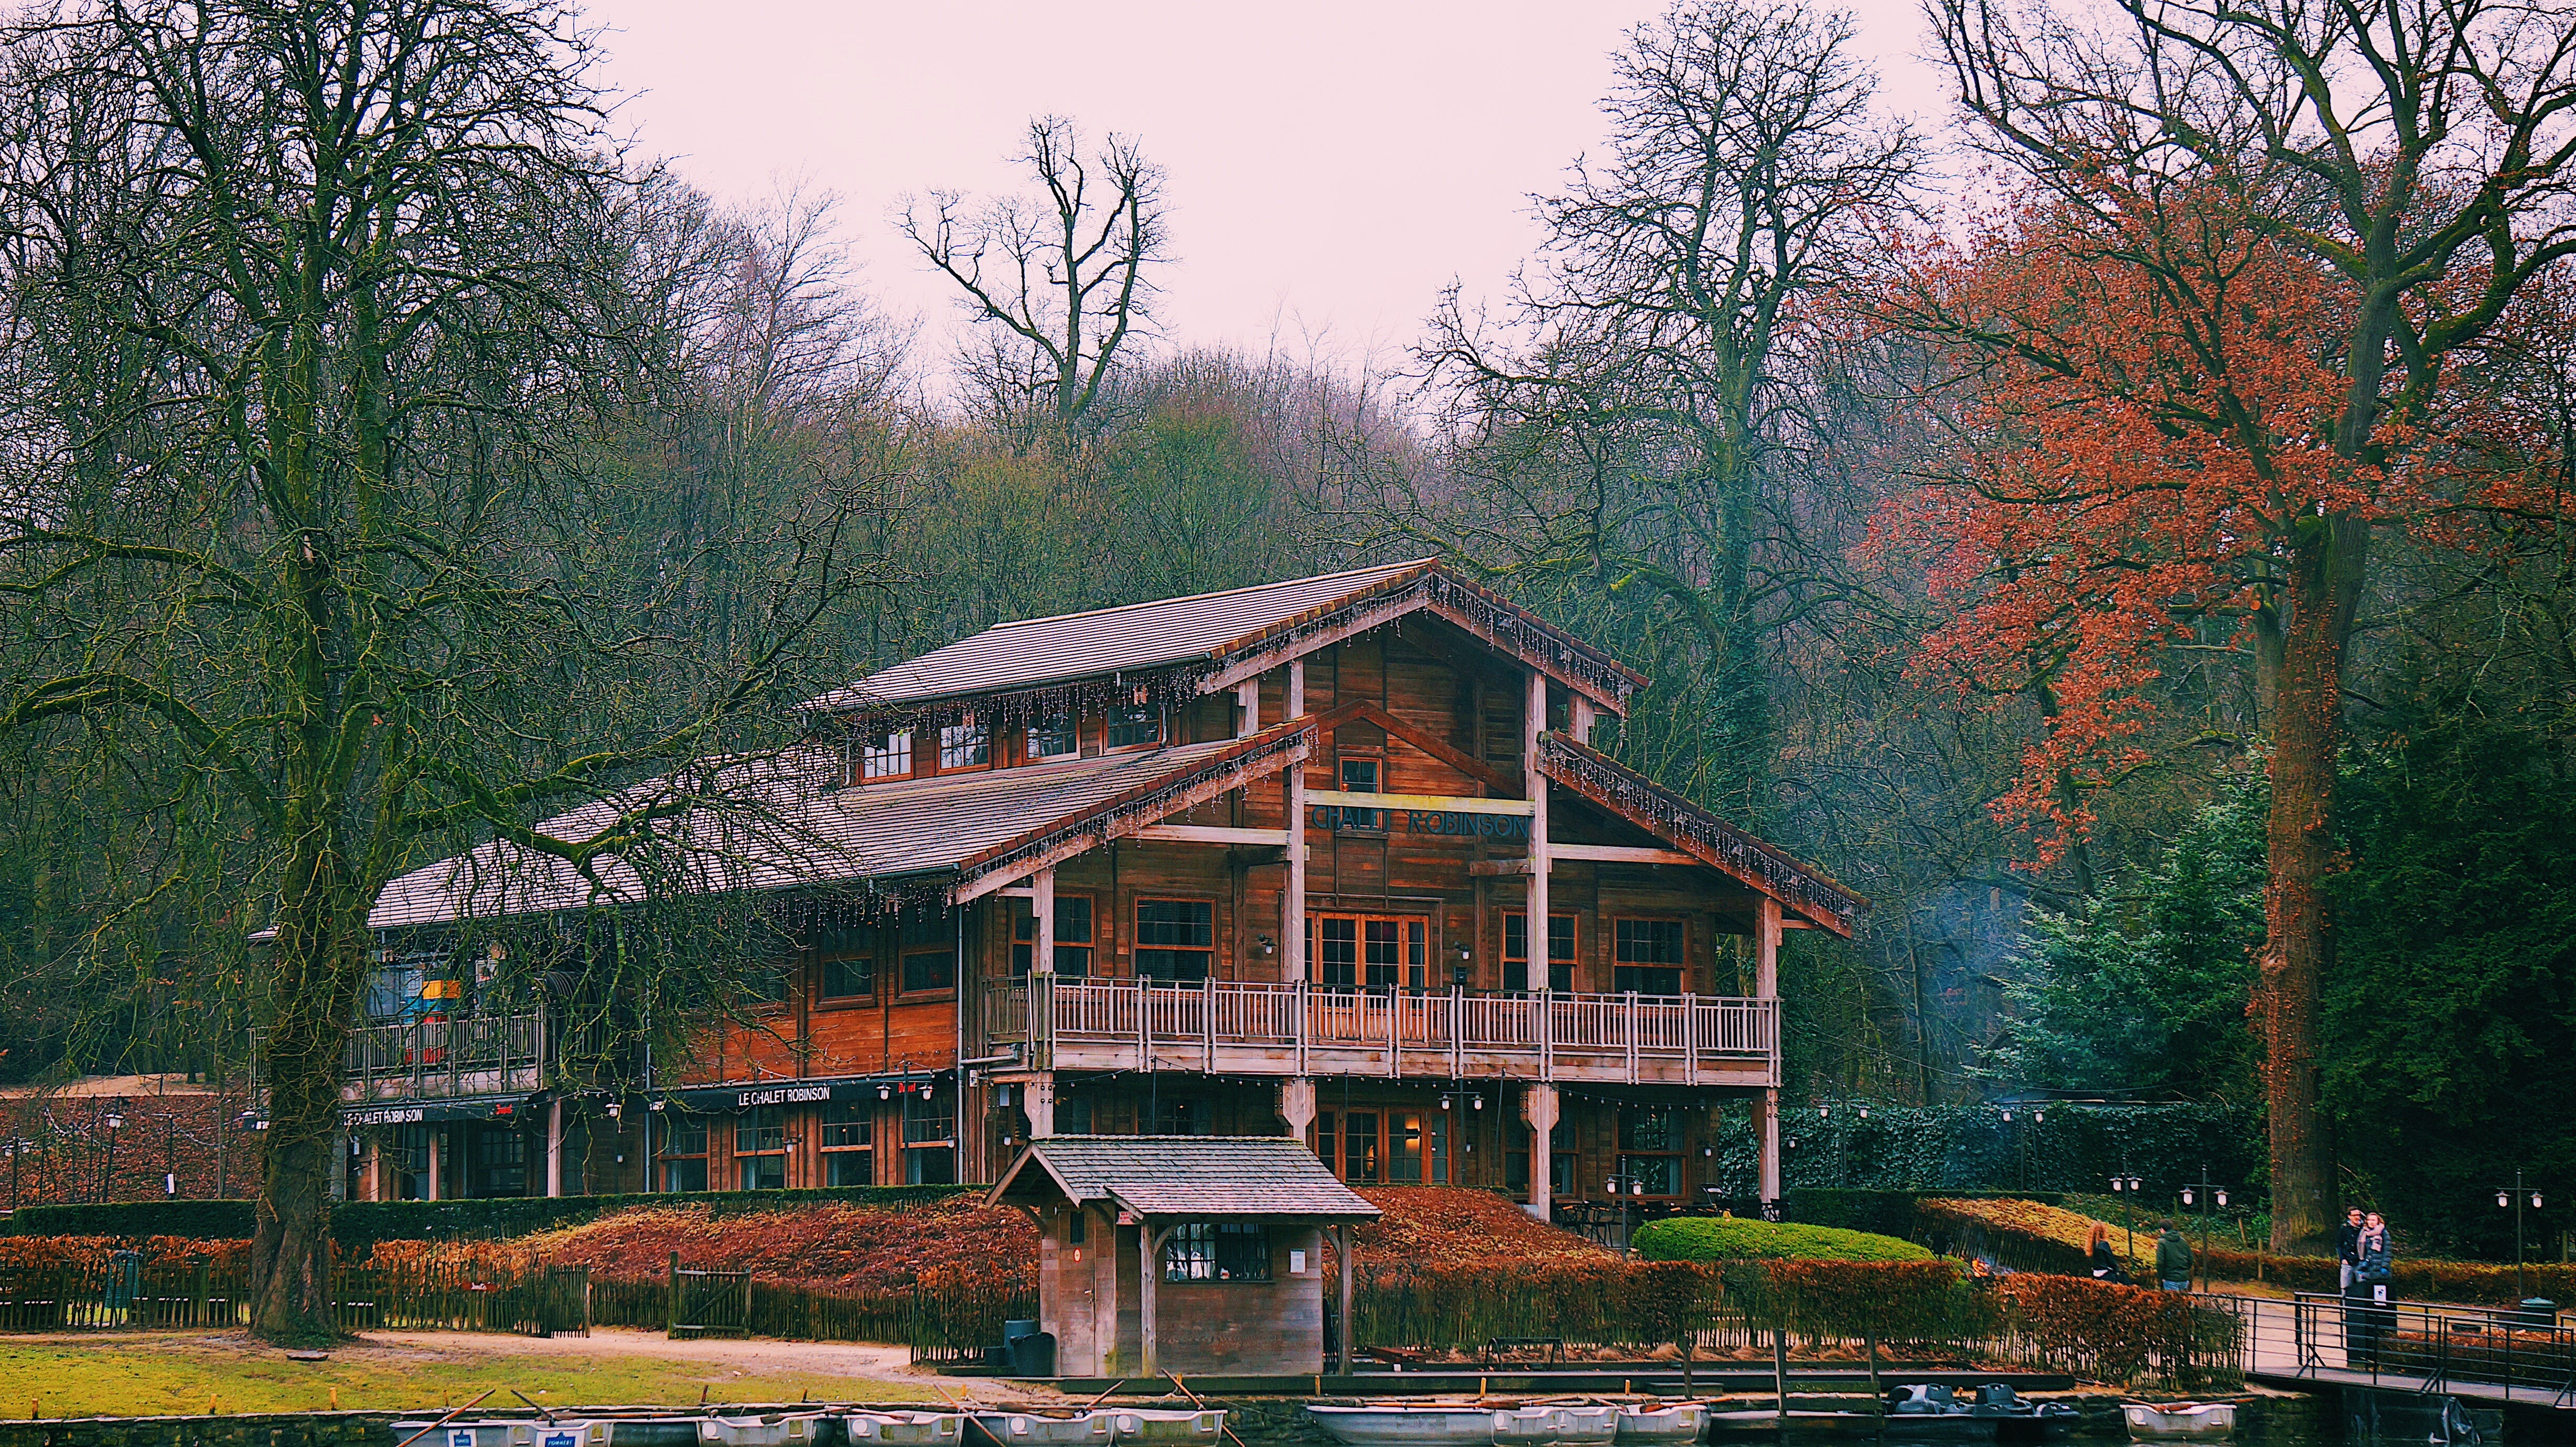 Brown Wooden Multi-story House Surrounded by Trees